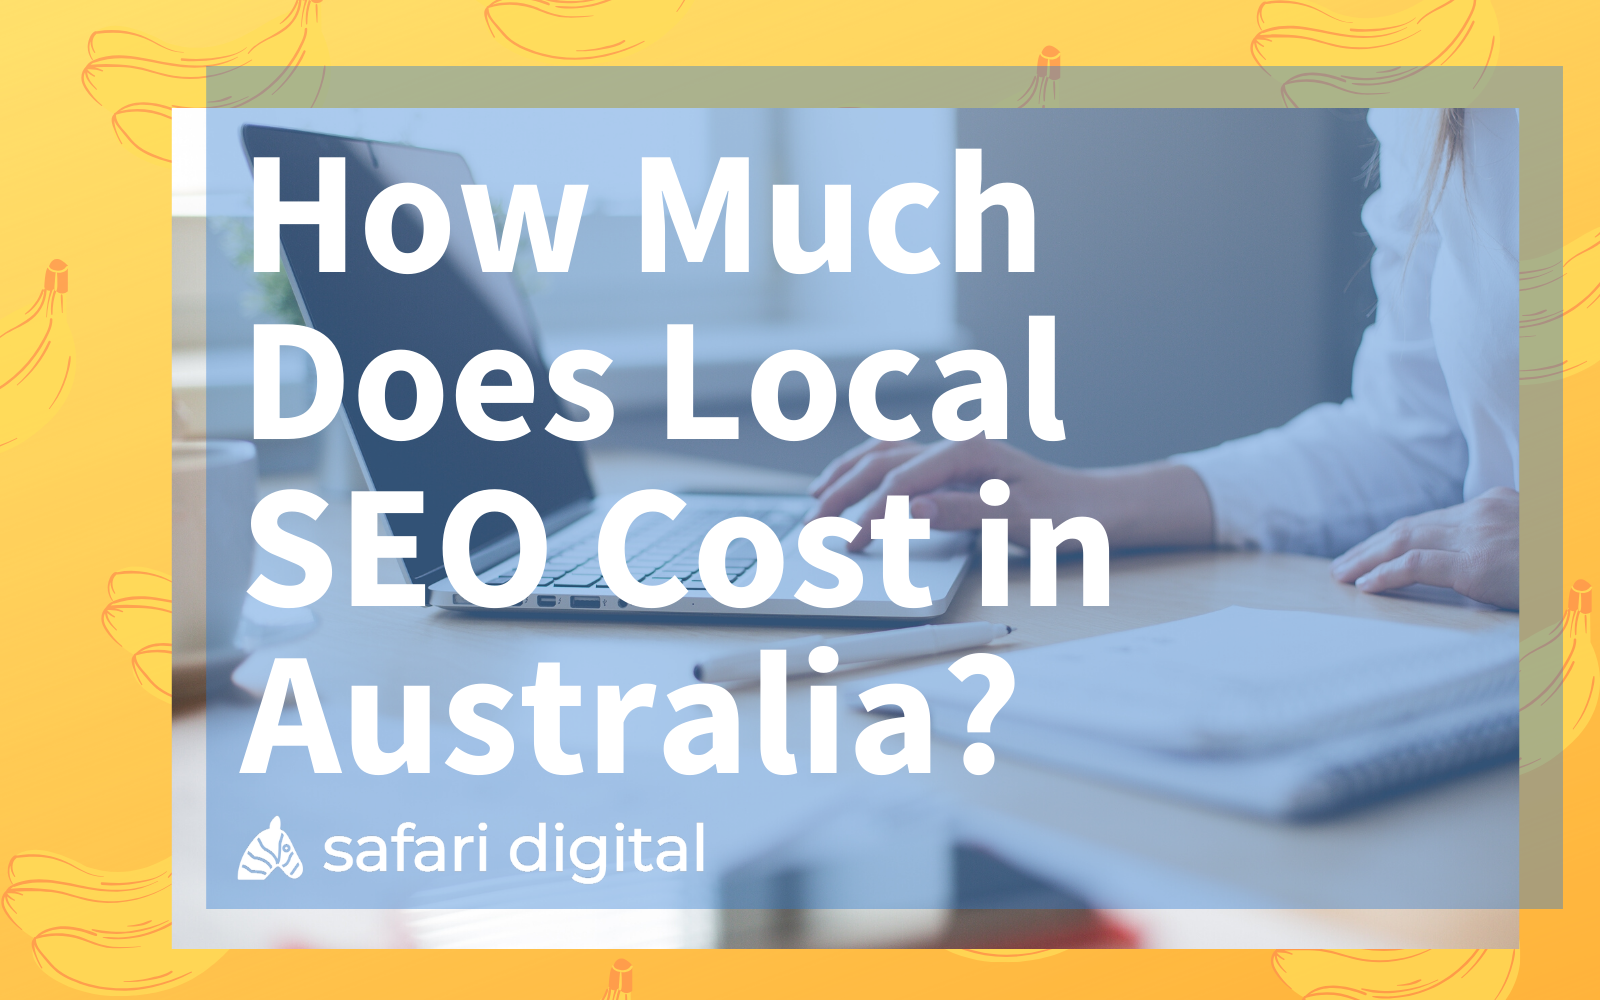 How much does local SEO cost in Australia cover image large